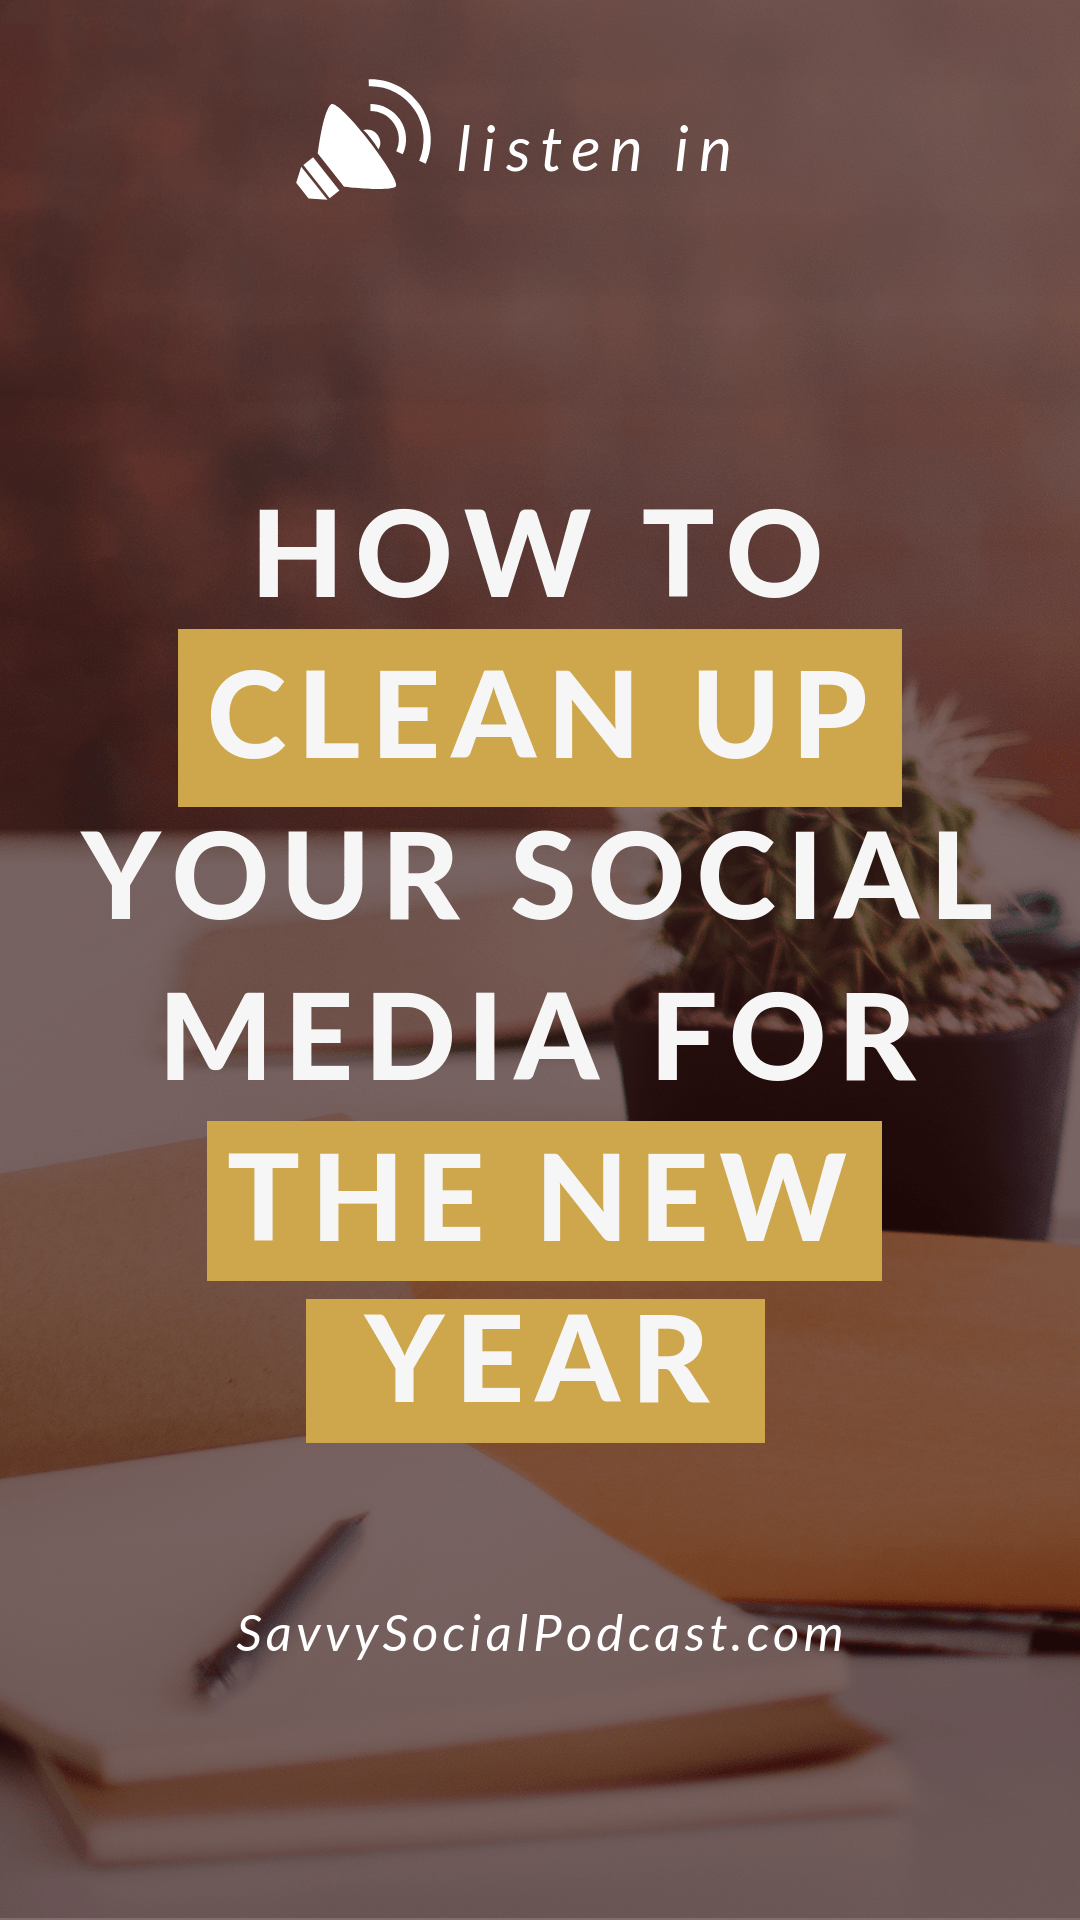 How to Clean Up Your Social Media for the New Year